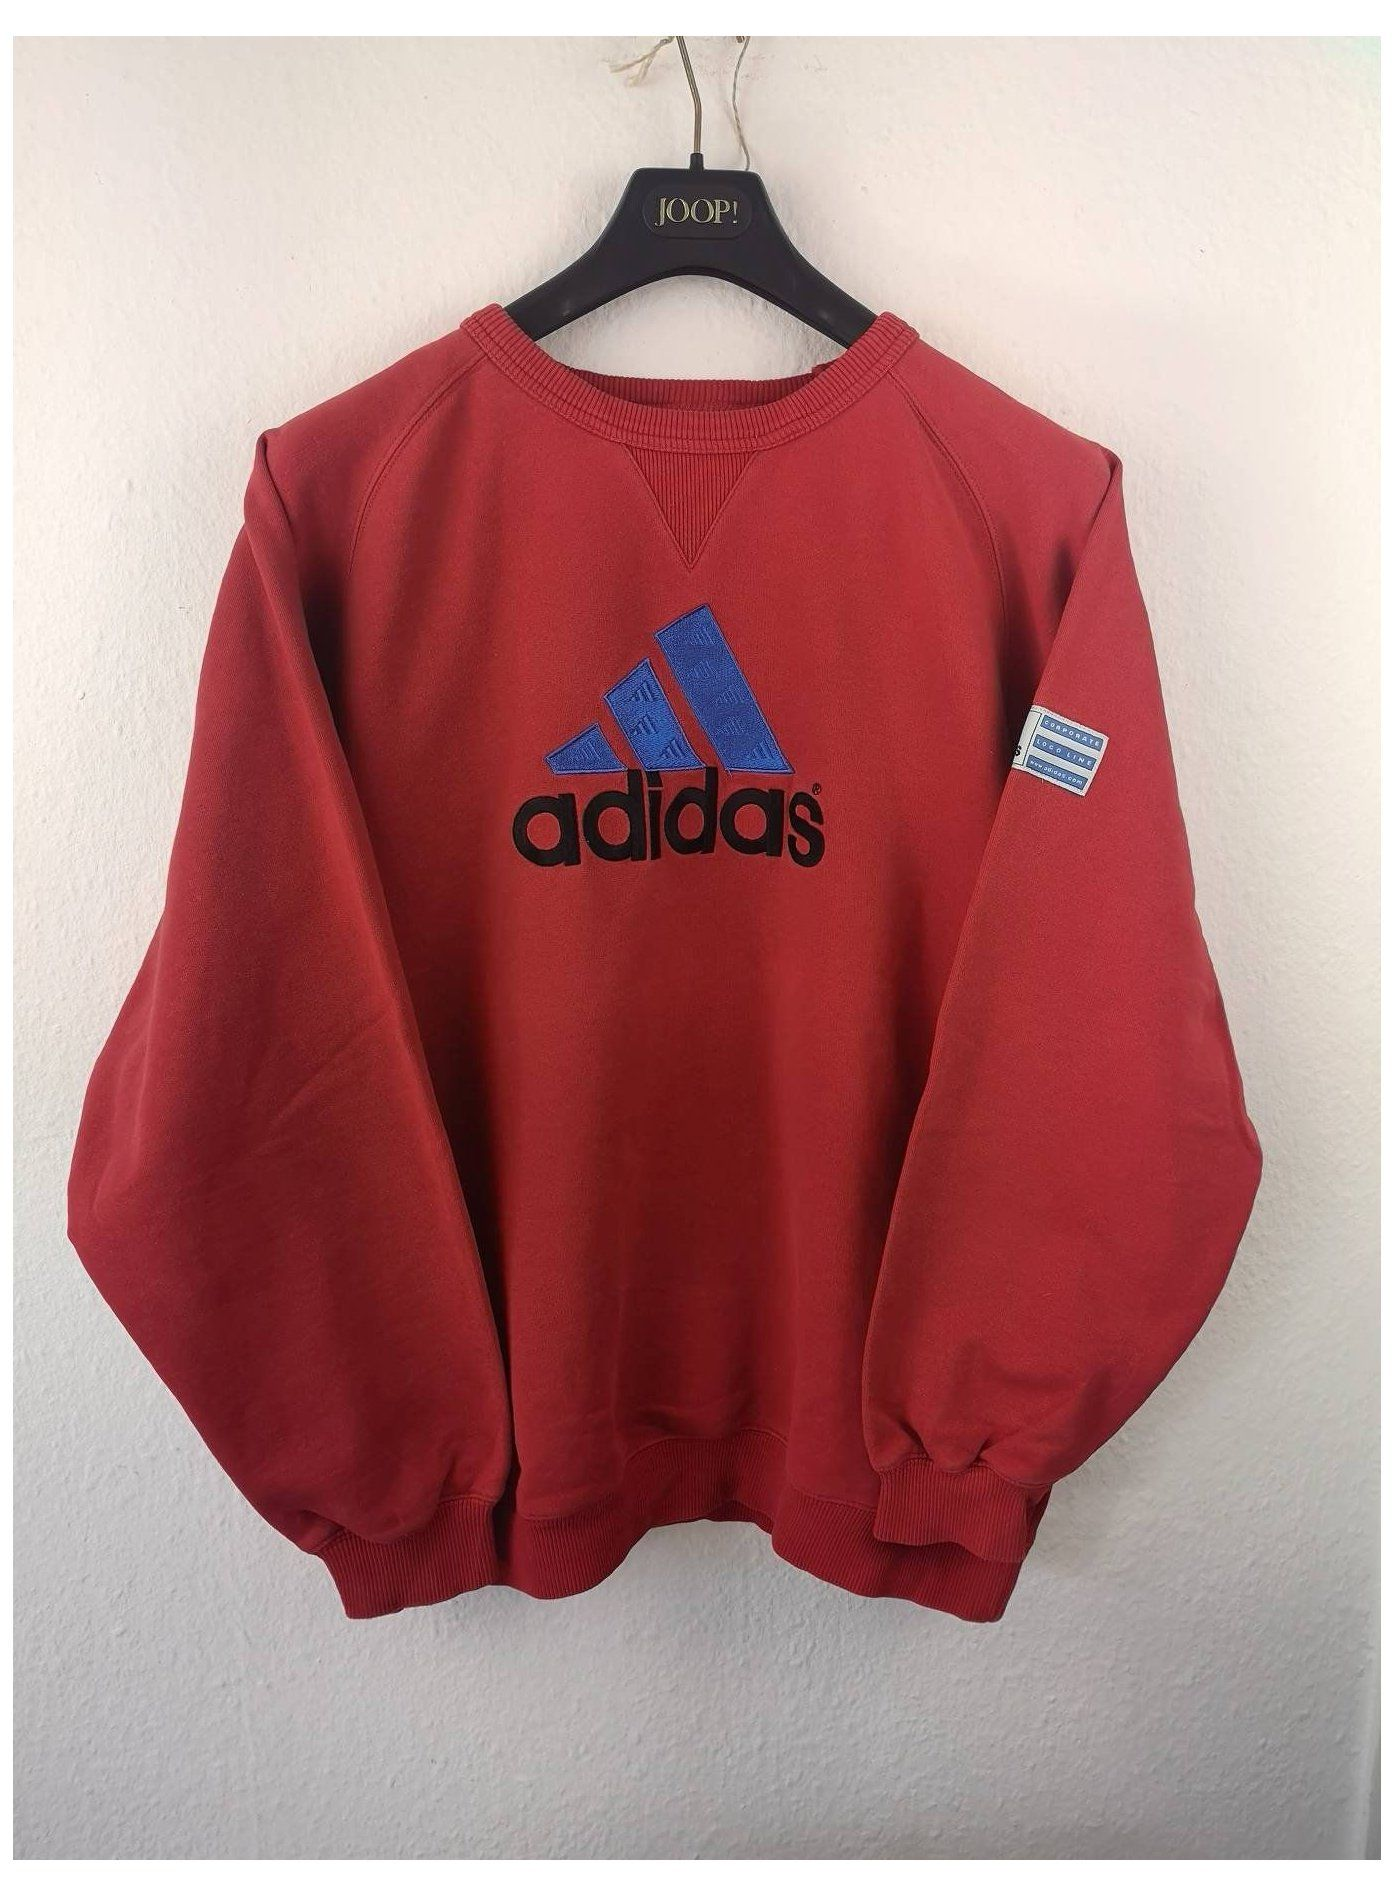 Selten Vintage Adidas V Neck Corporate Logo Line Braun Unisex Etsy Adidas Pullover Rot Vintage Hoodies Hipster Outfits Vintage Adidas [ 1896 x 1394 Pixel ]